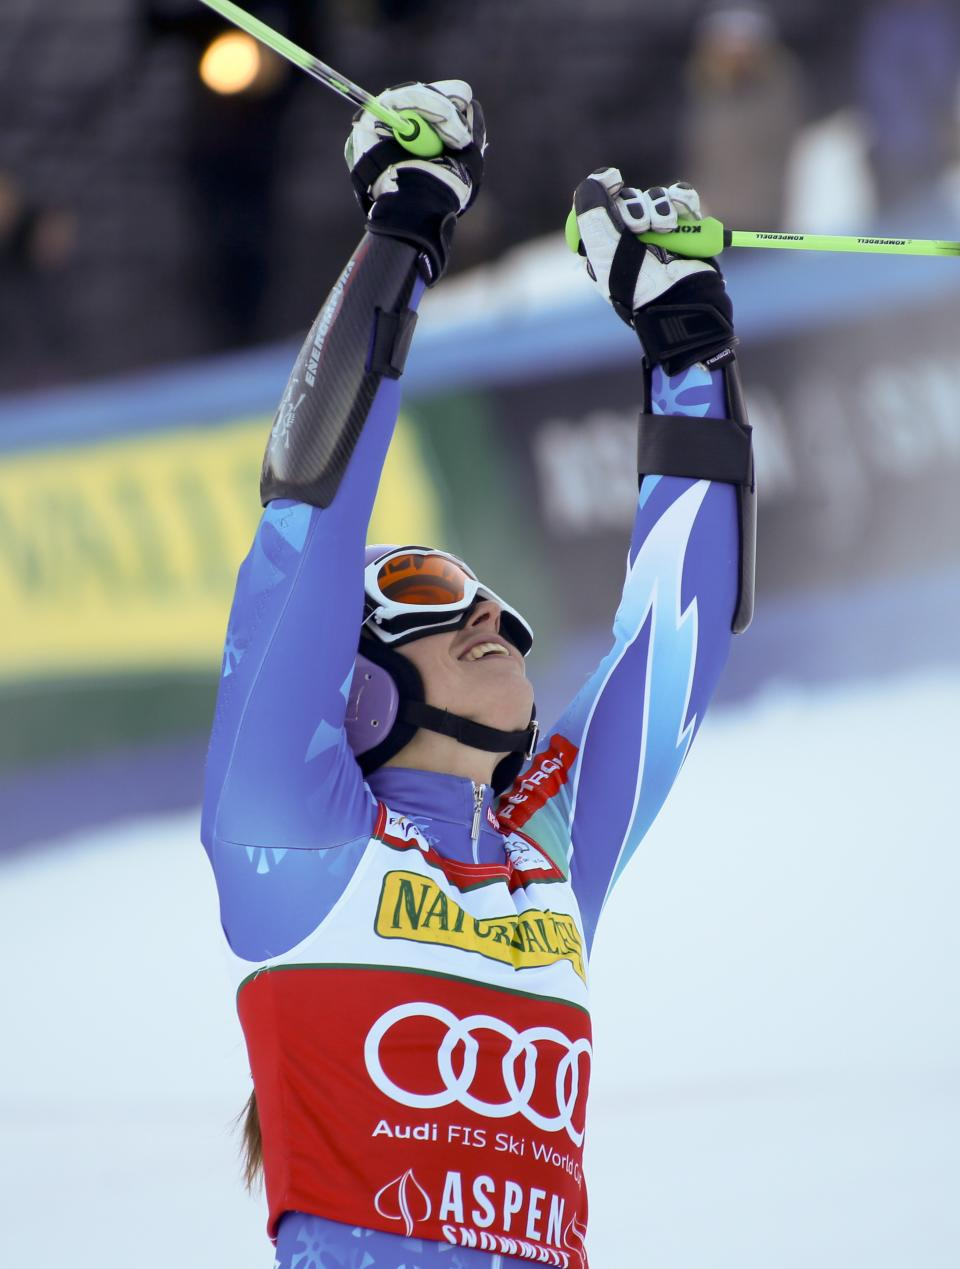 CORRECTS DATE - Tina Maze from Slovenia, reacts in the finish arena after winning the women's World Cup giant slalom race in Aspen, Colo., on Saturday, Nov. 24, 2012.  (AP Photo/ Nathan Bilow)